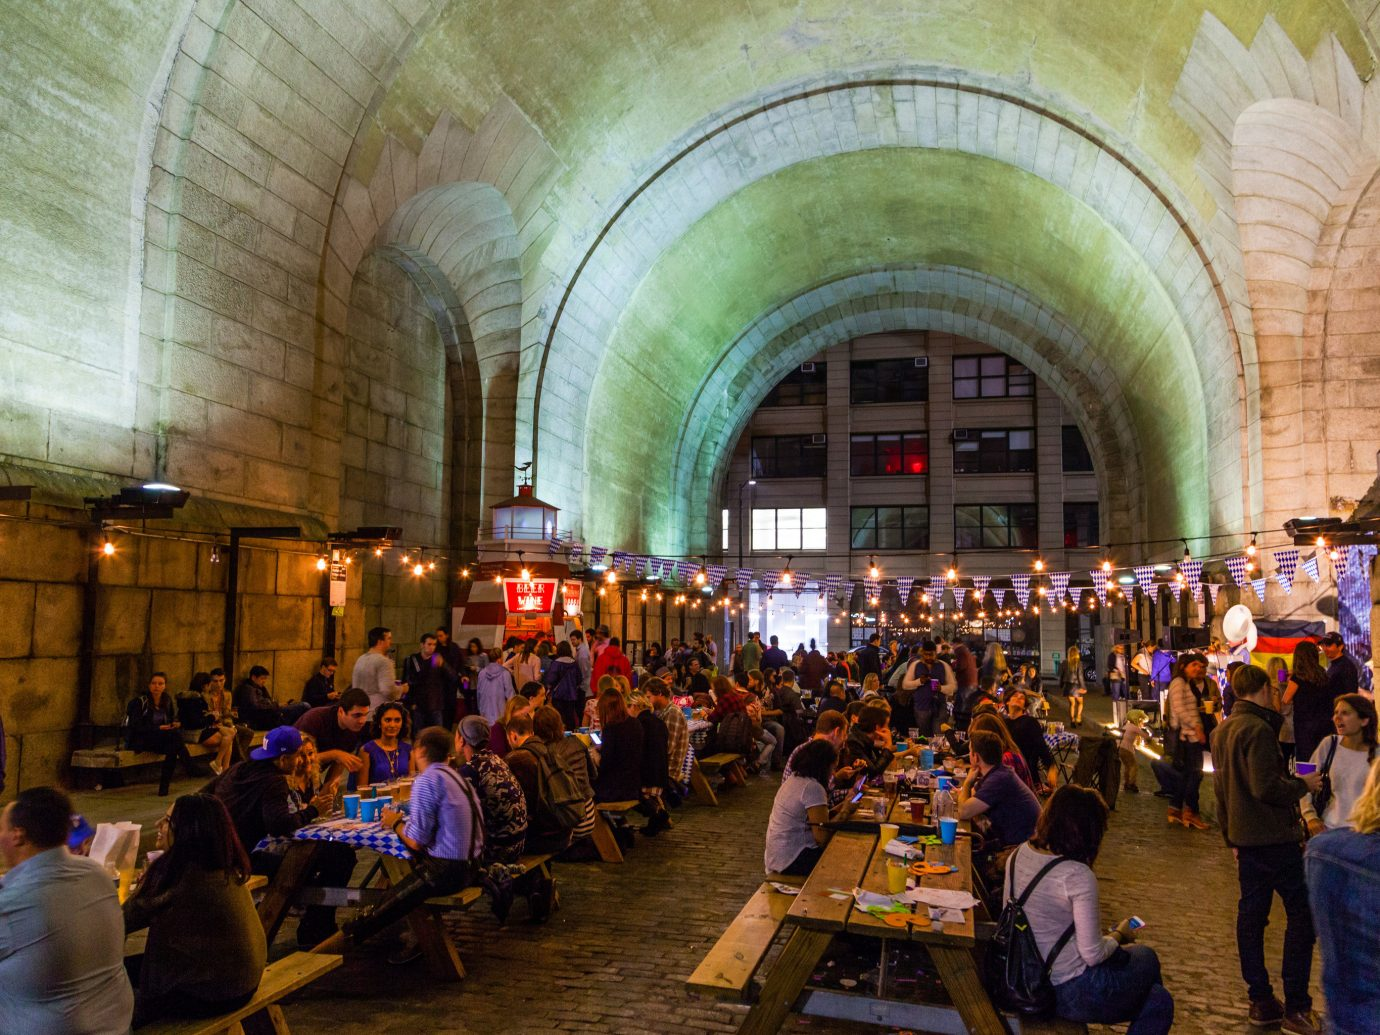 Arts + Culture Fall Travel Festivals + Events person indoor people crowd tourist attraction City tourism bazaar building arch